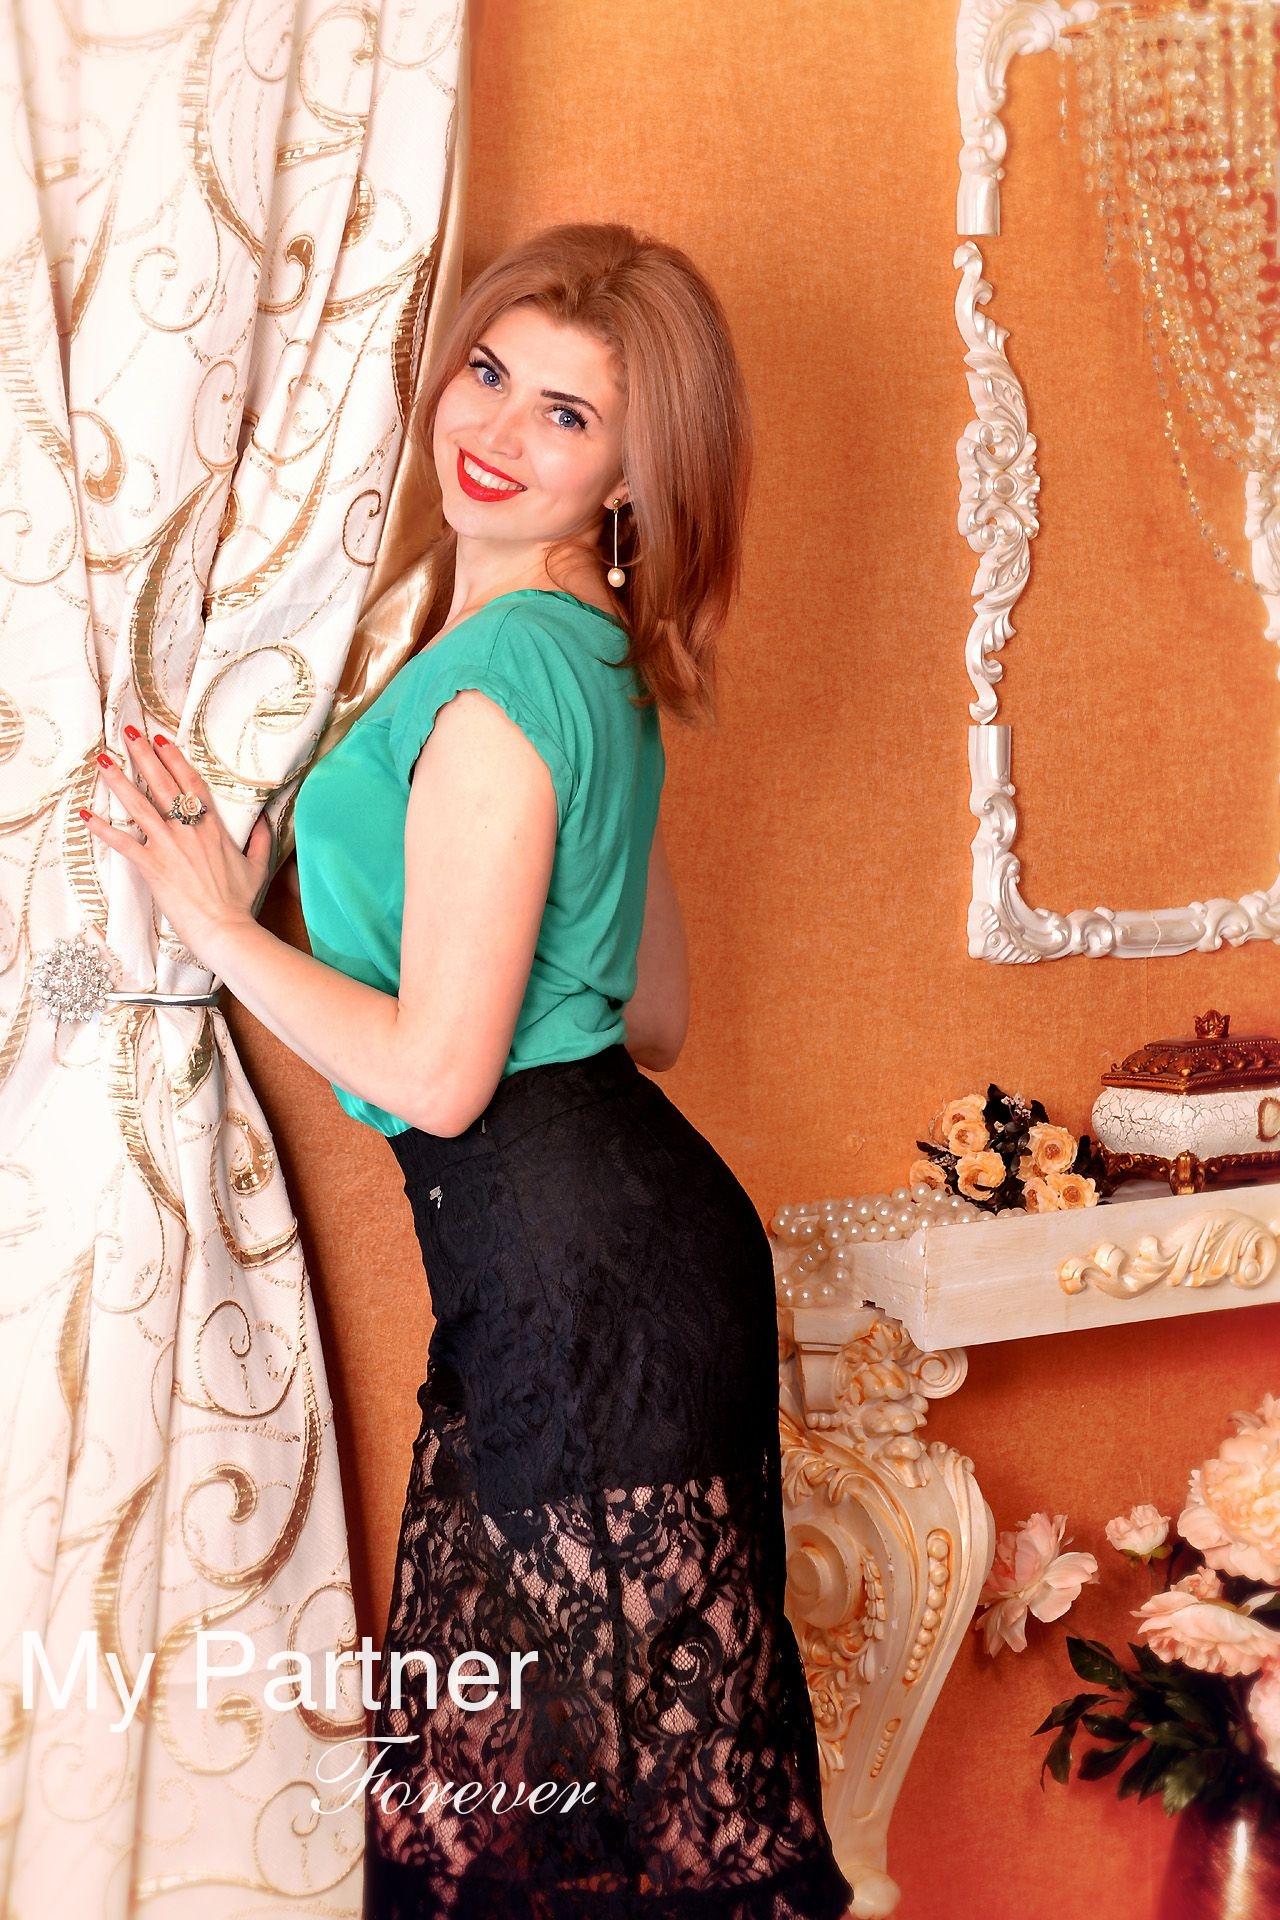 Dating Site to Meet Gorgeous Ukrainian Woman Alina from Kharkov, Ukraine